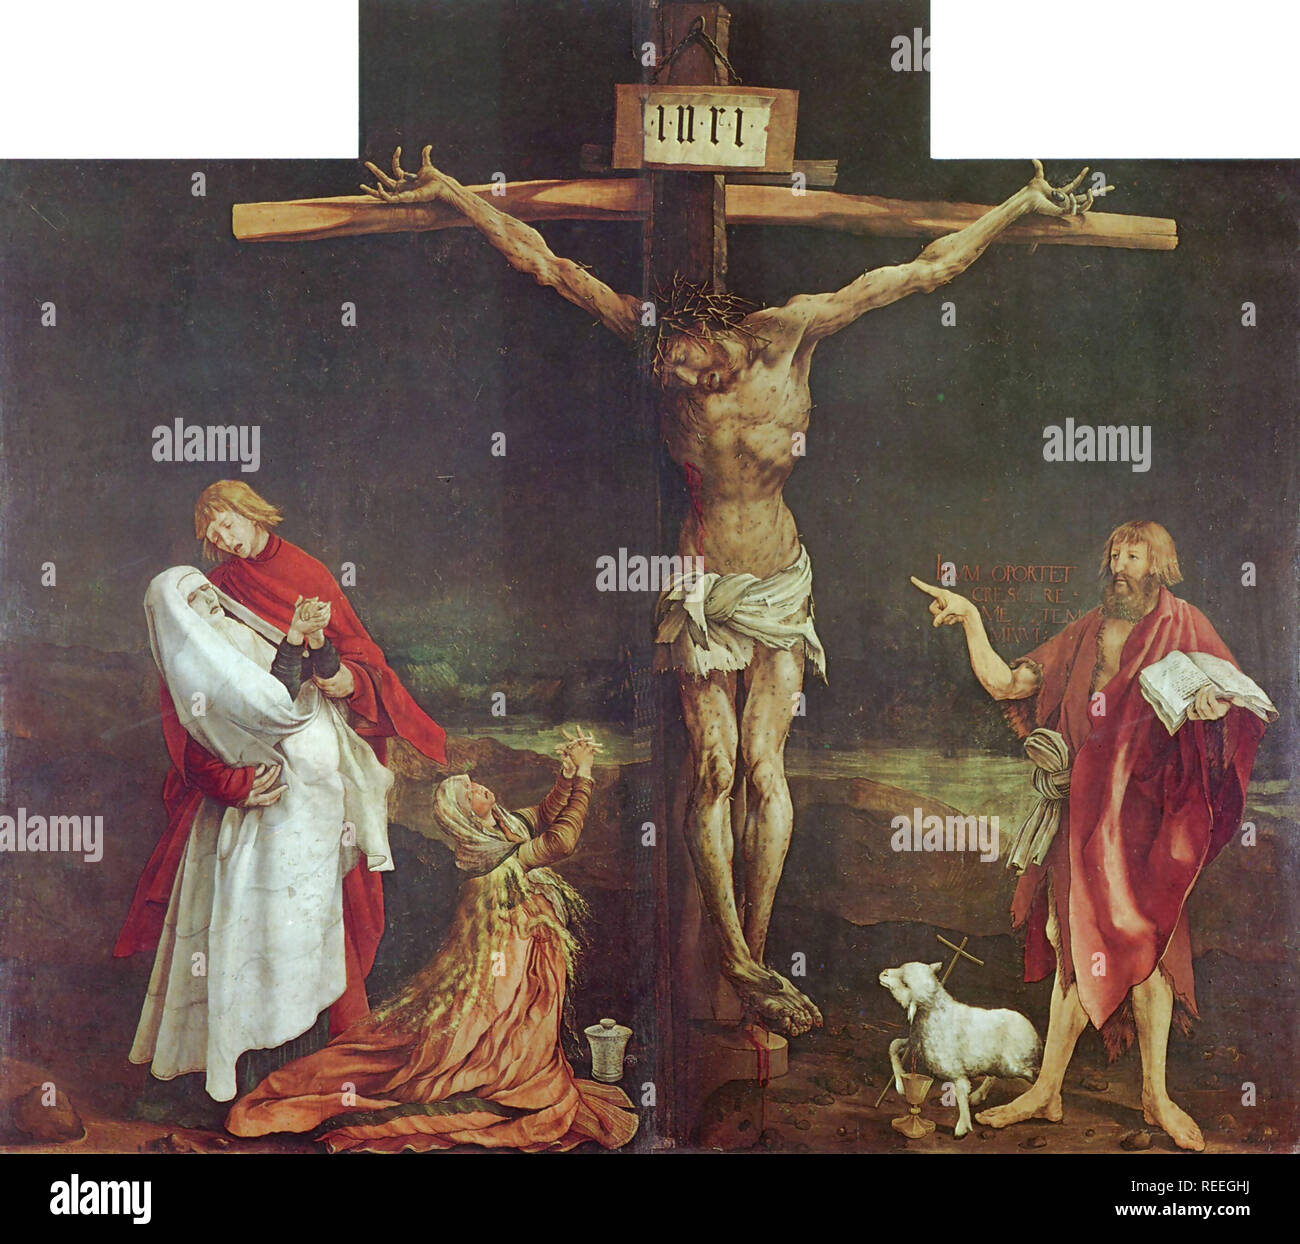 Crucifixion from the Isenheim altar by Mathias Grünewald. The Isenheim Altarpiece is an altarpiece sculpted and painted by, respectively, the Germans Nikolaus of Haguenau and Matthias Grünewald in 1512–1516. - Stock Image